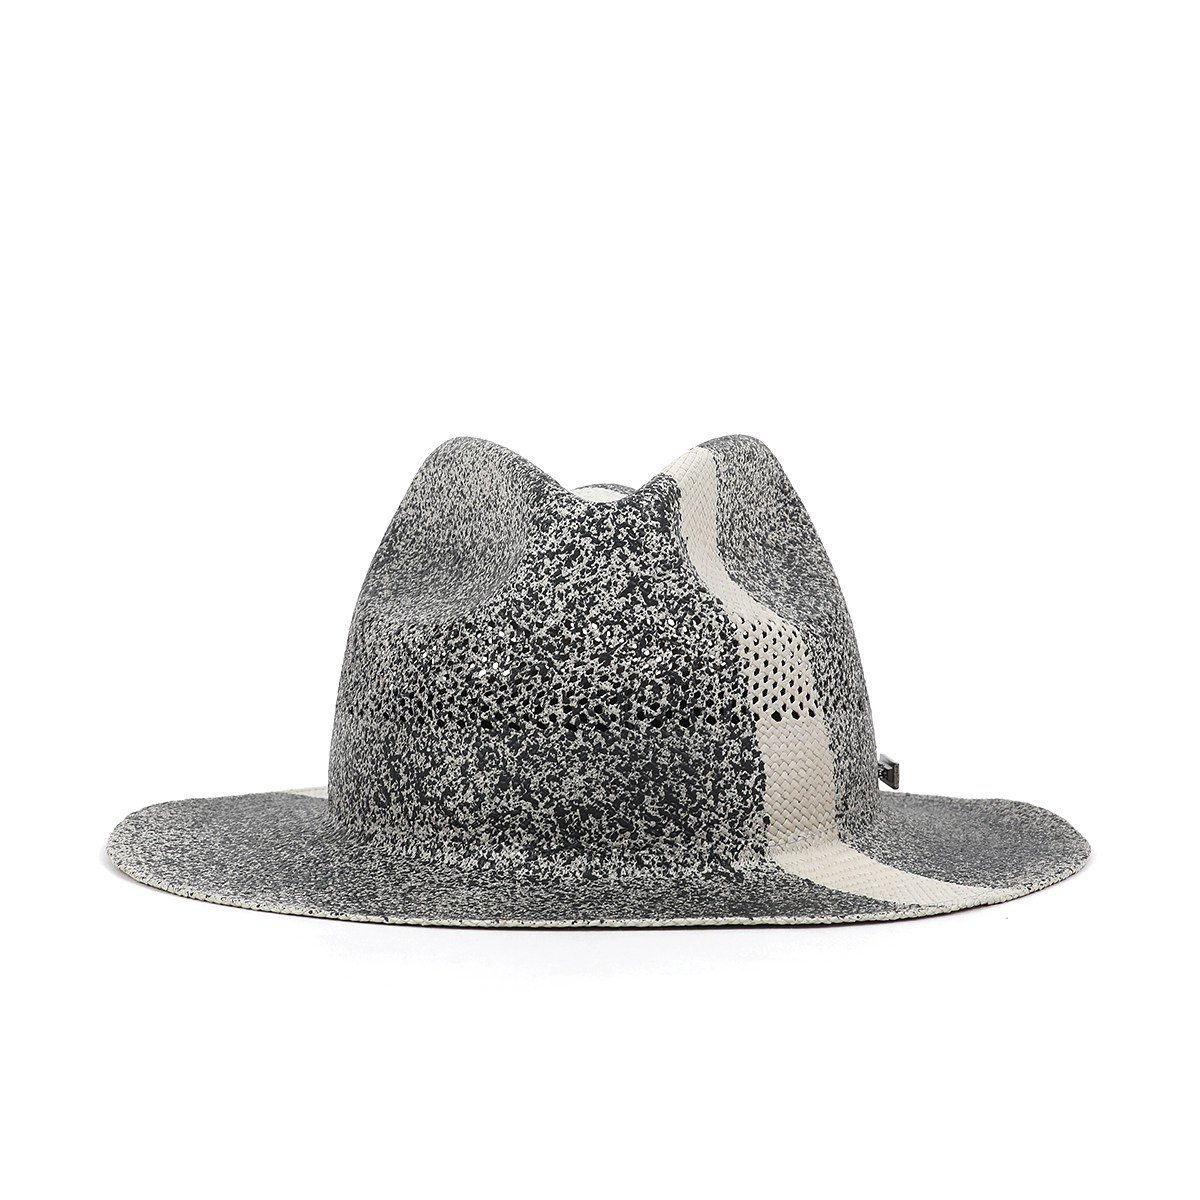 AIR BRUSH PANAMA HAT 詳細画像1